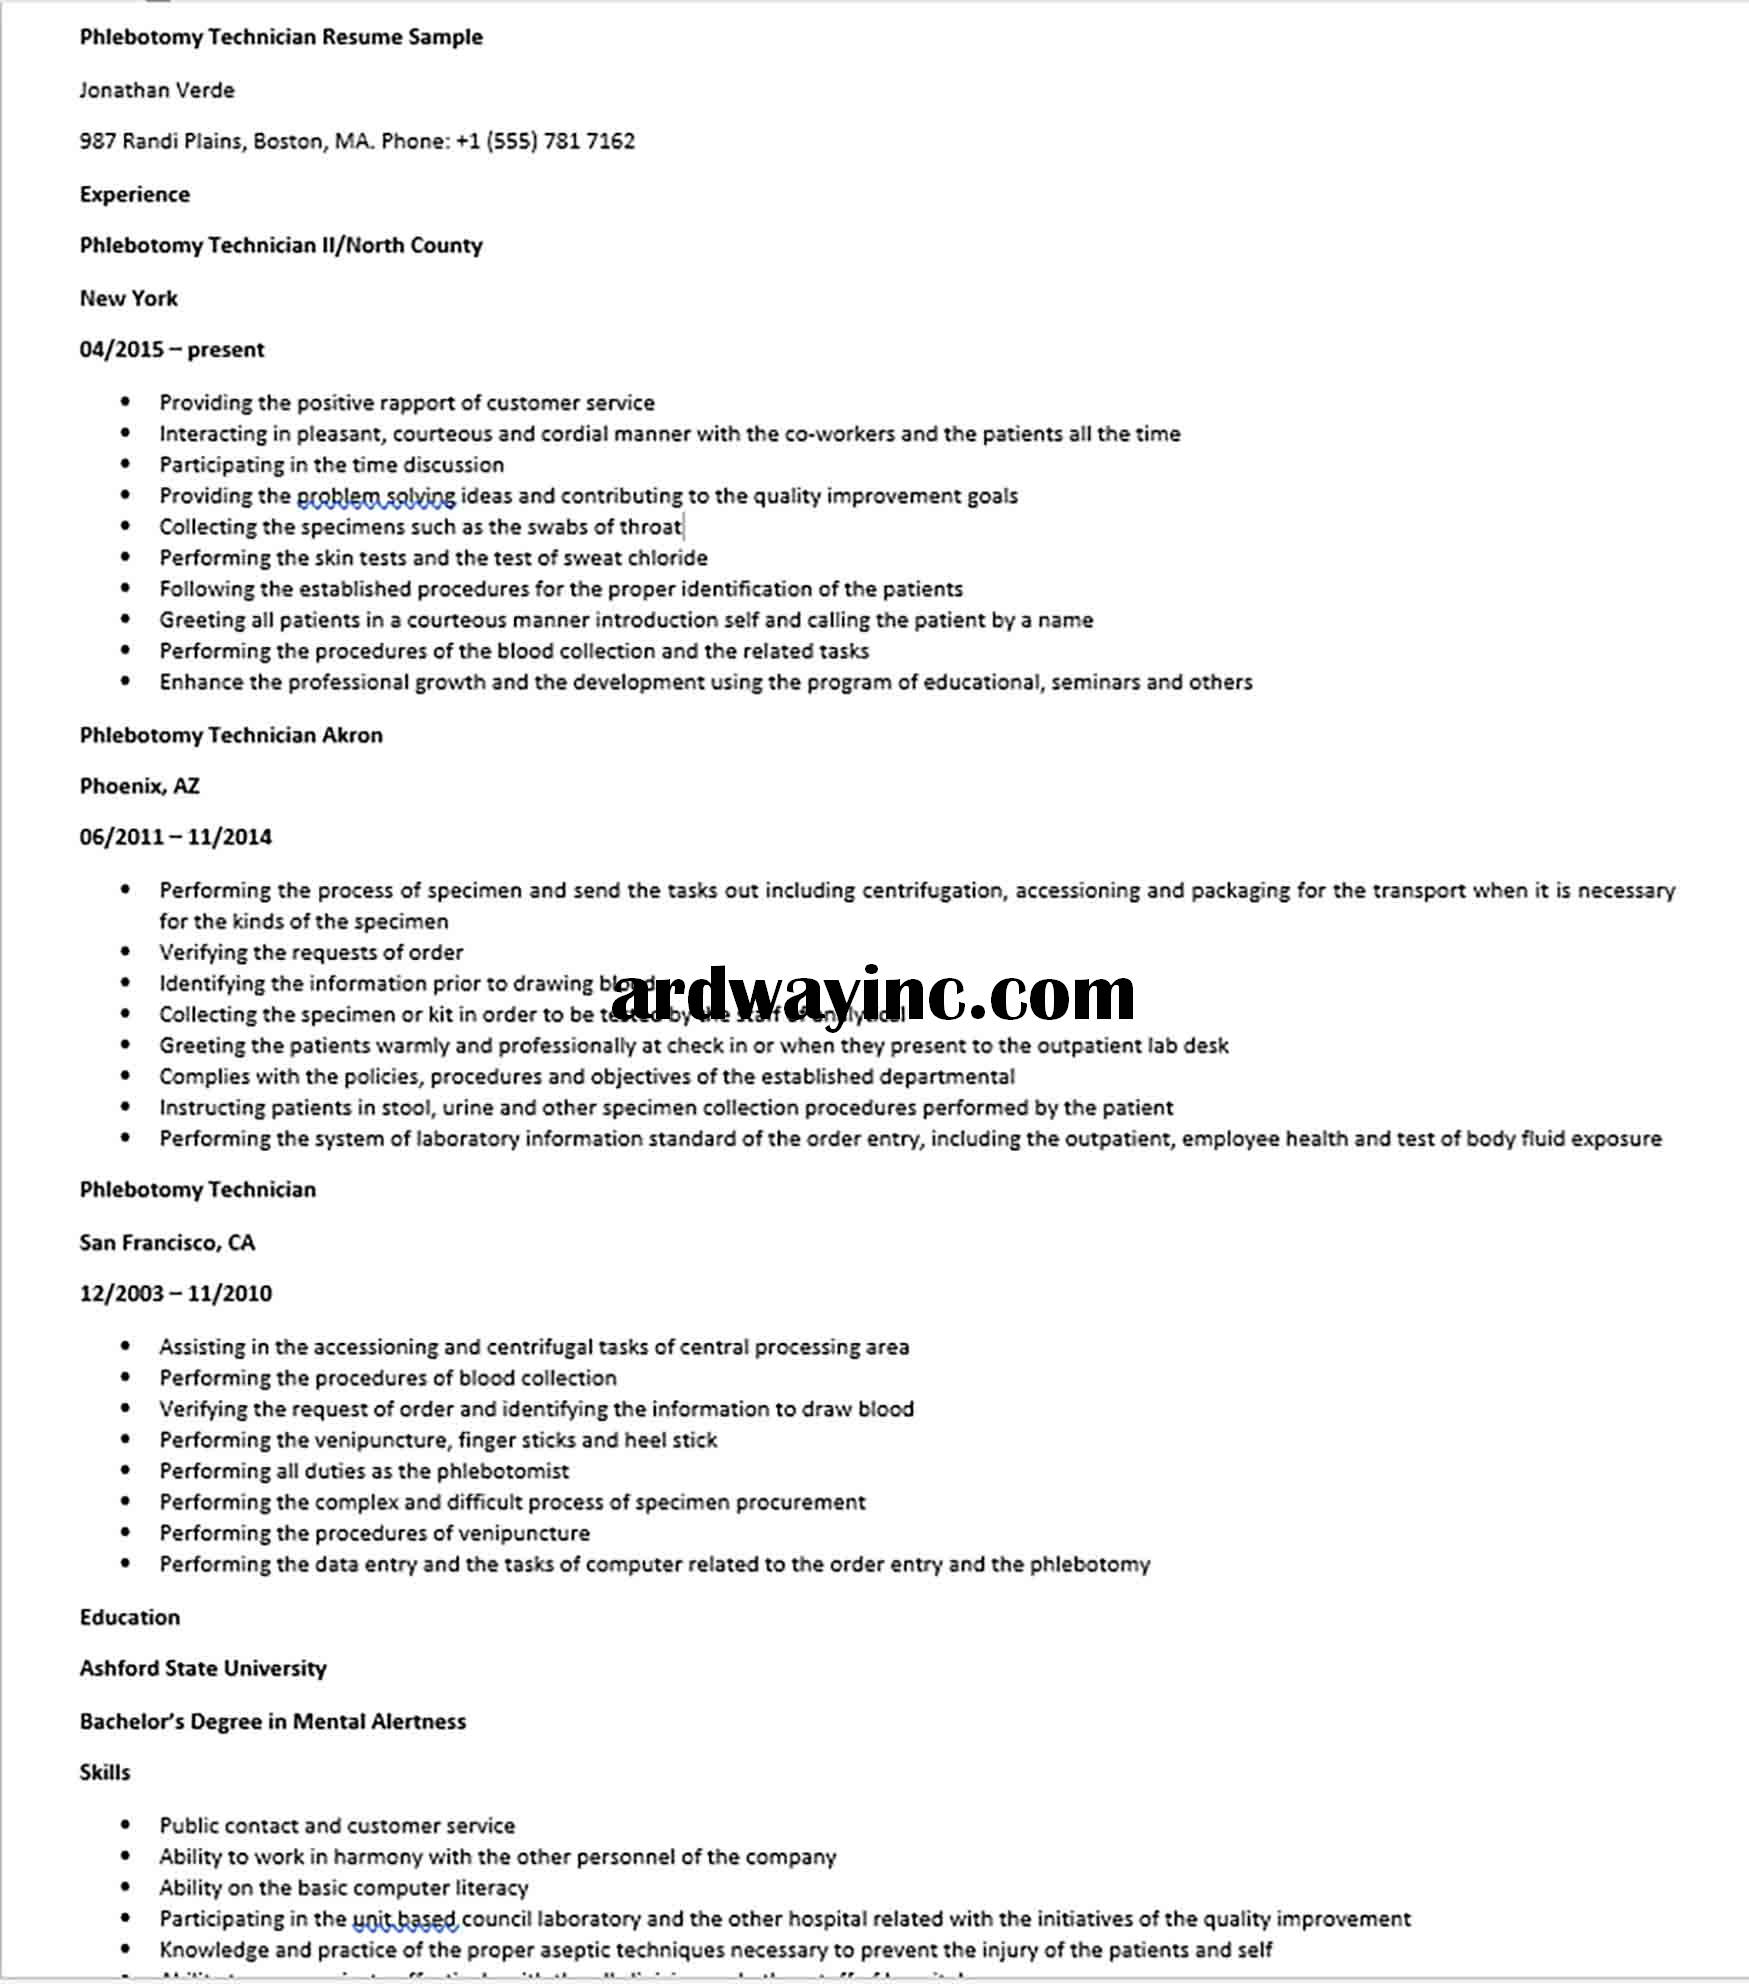 Phlebotomy Technician Resume Sample